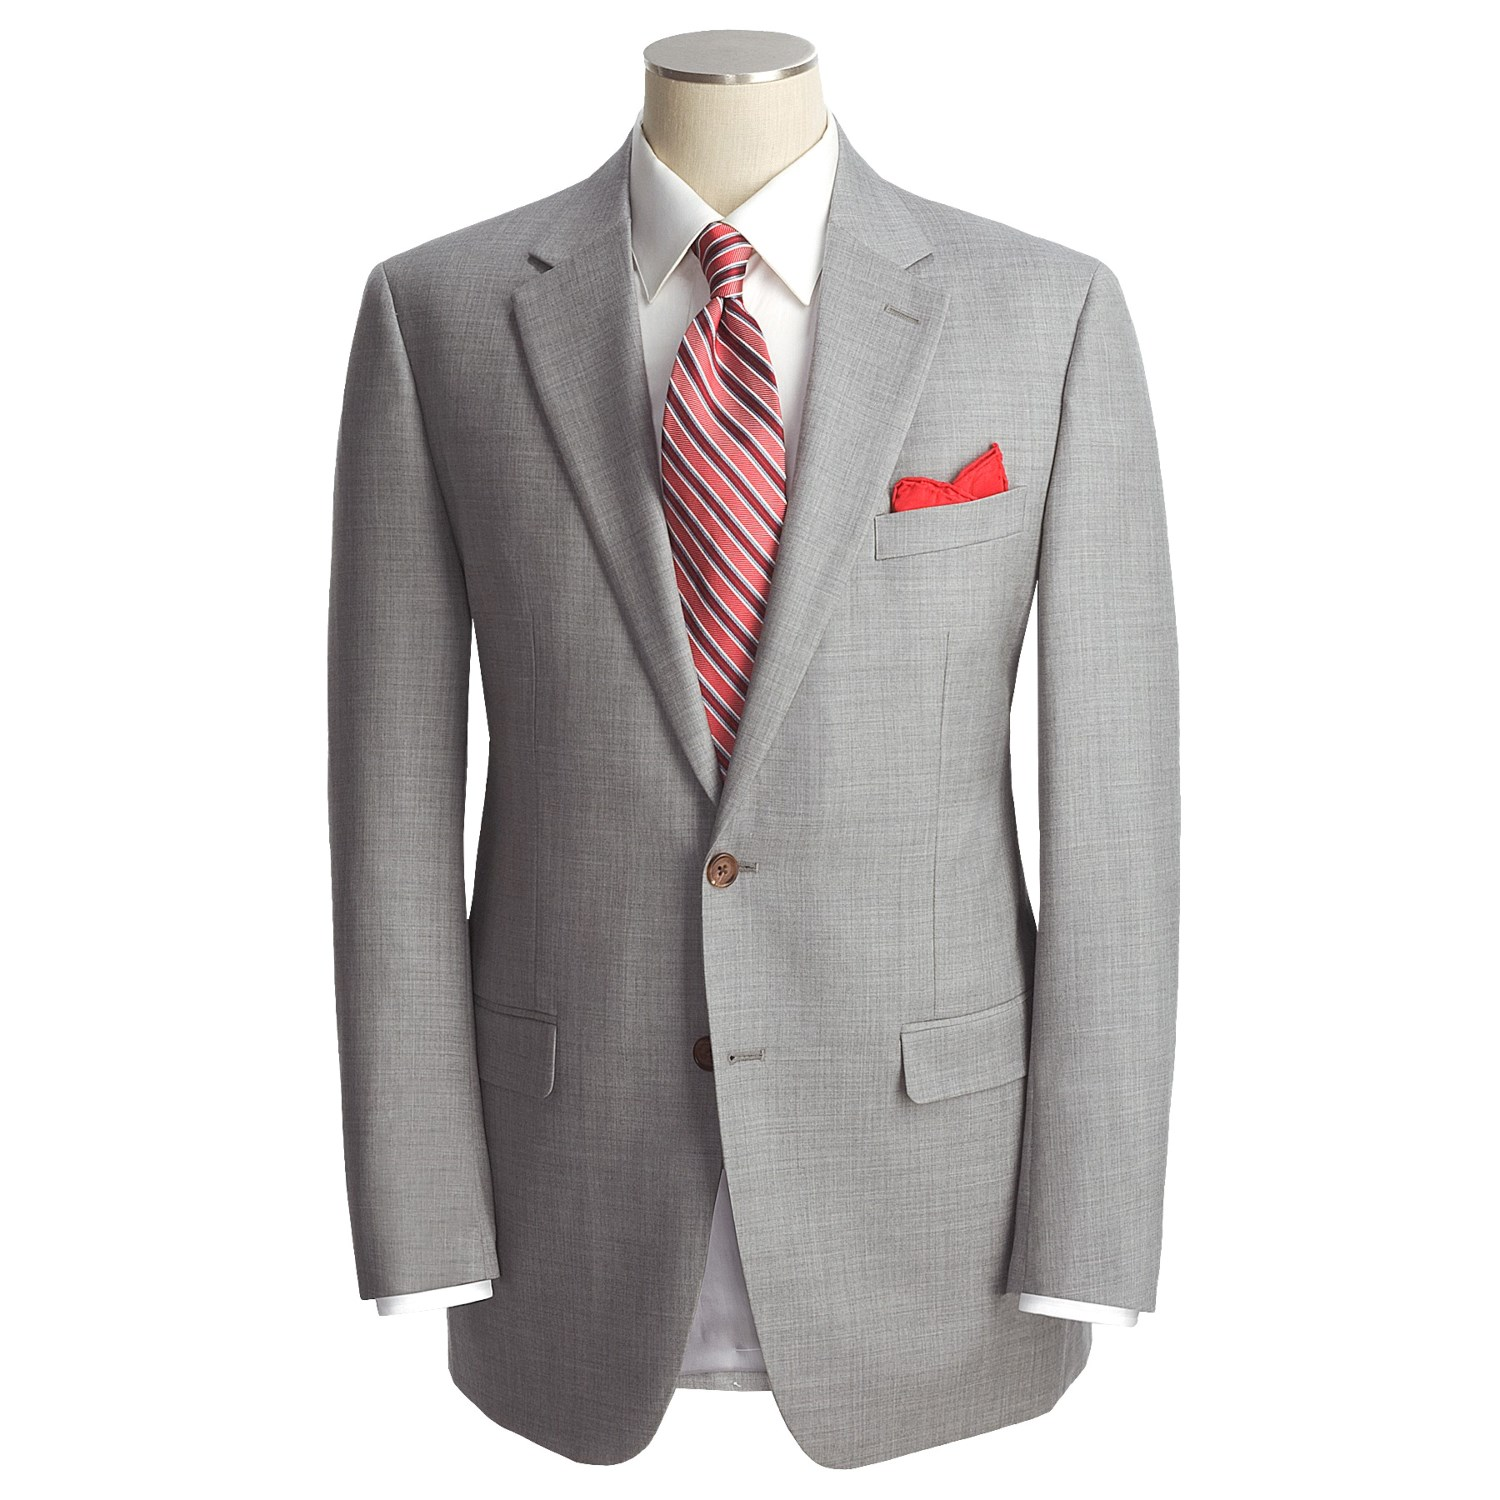 Suit in Light Grey Wool & Mohair If your jacket size is in stock, and your pant size is out-of-stock please get in touch over email at custom@cuttackfirstboutique.cf and we will organize production for you. This suit is also available for custom orders.